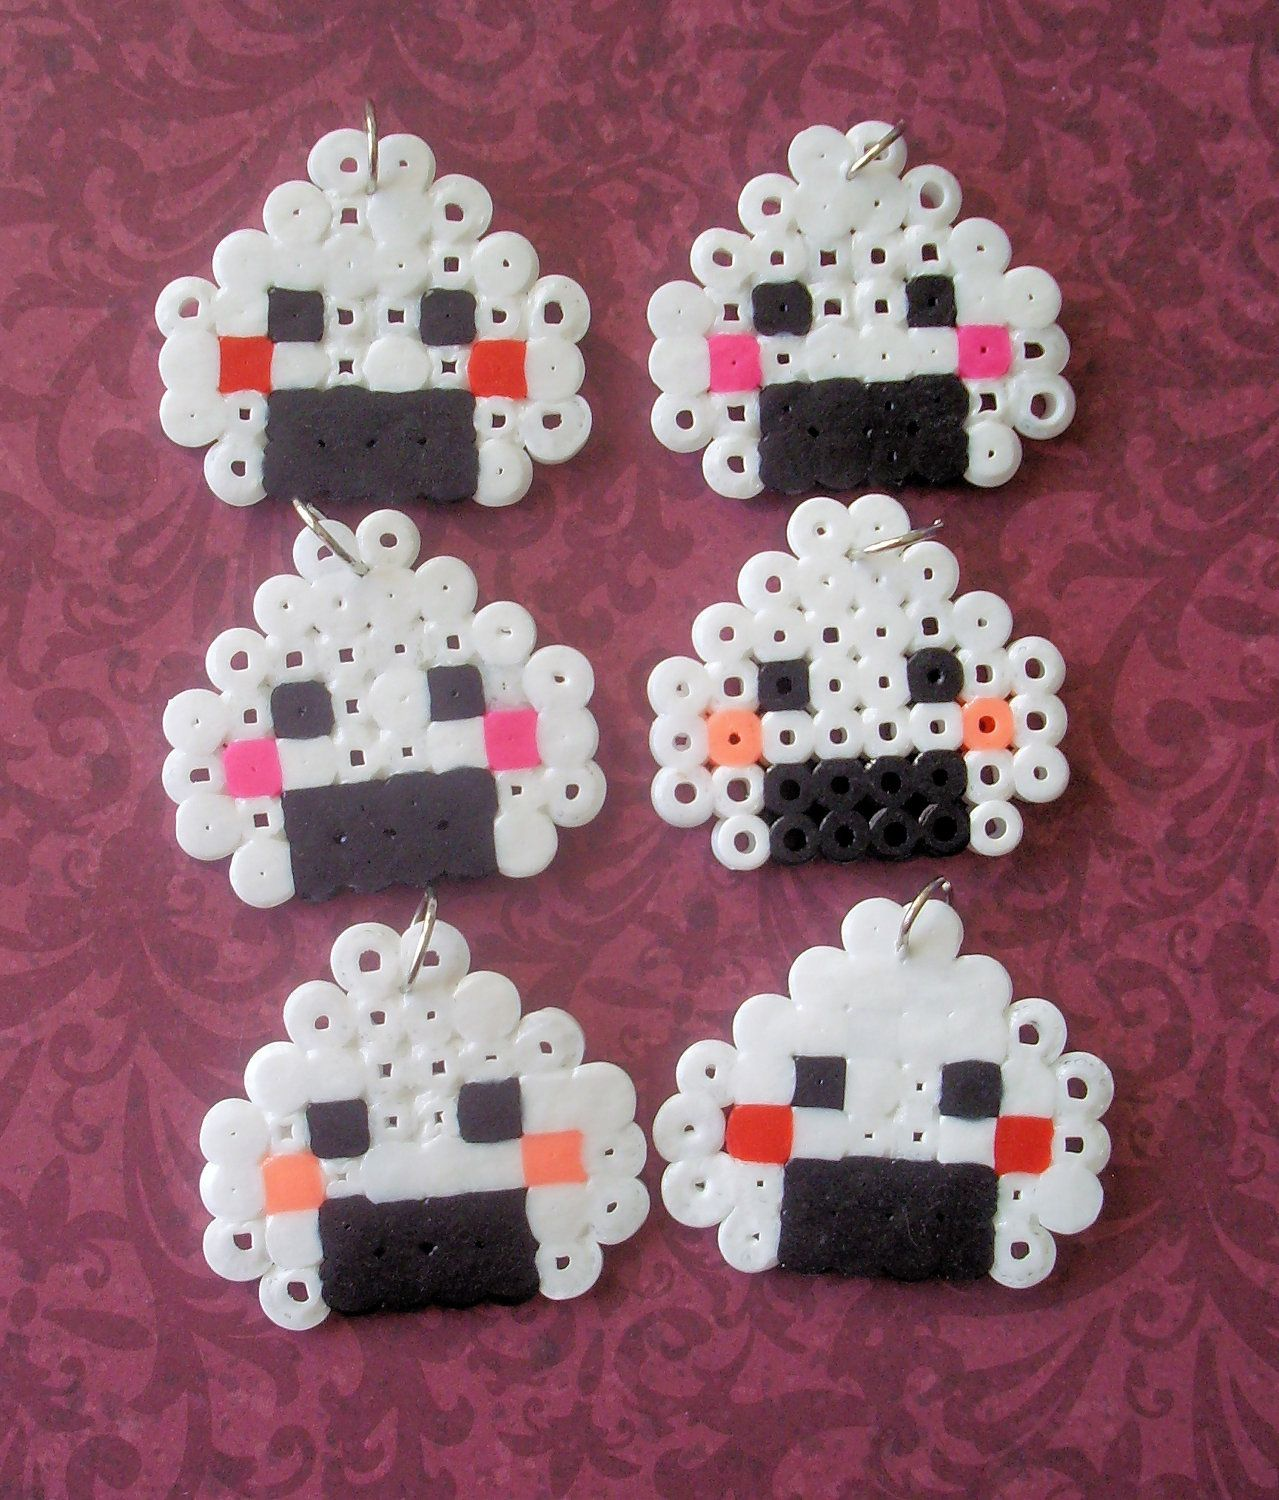 kawaii hama beads - Google Search | Hama Beads | Hama ...